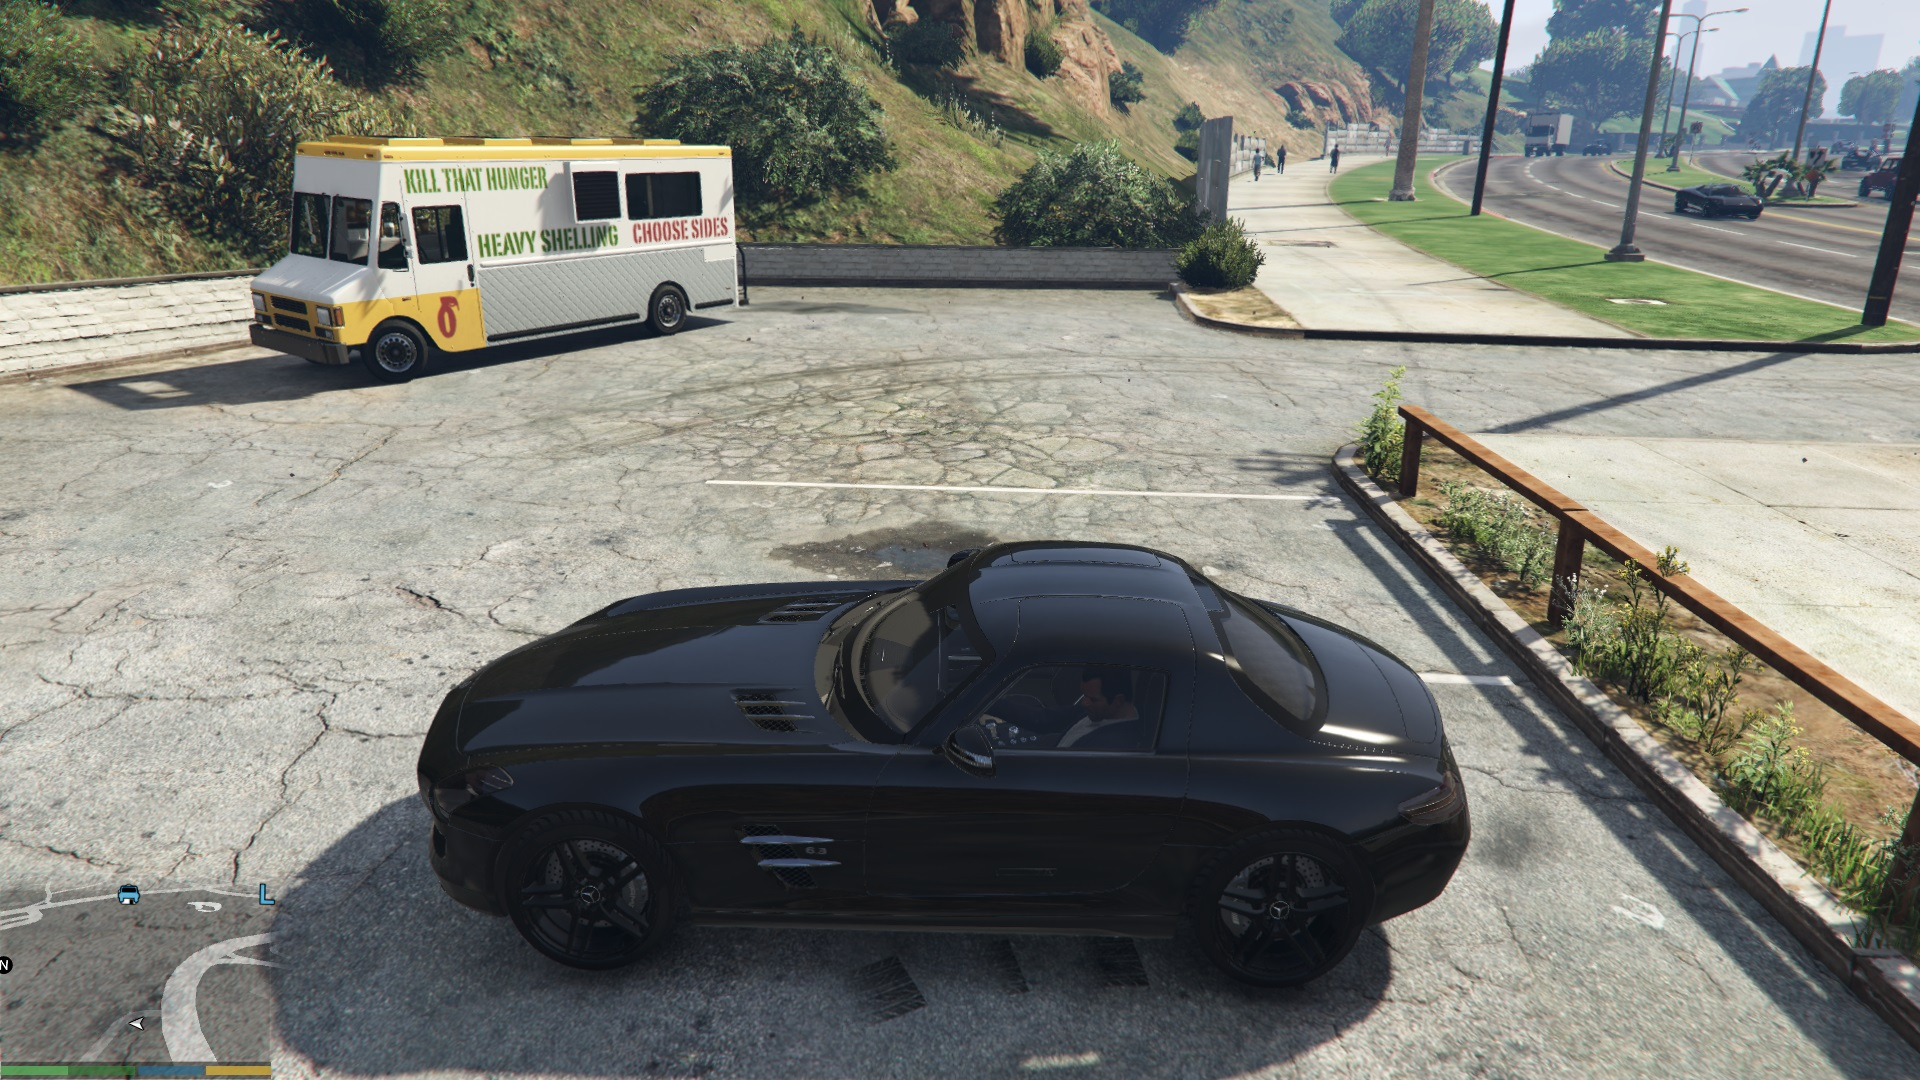 Games Where You Can Mod Cars